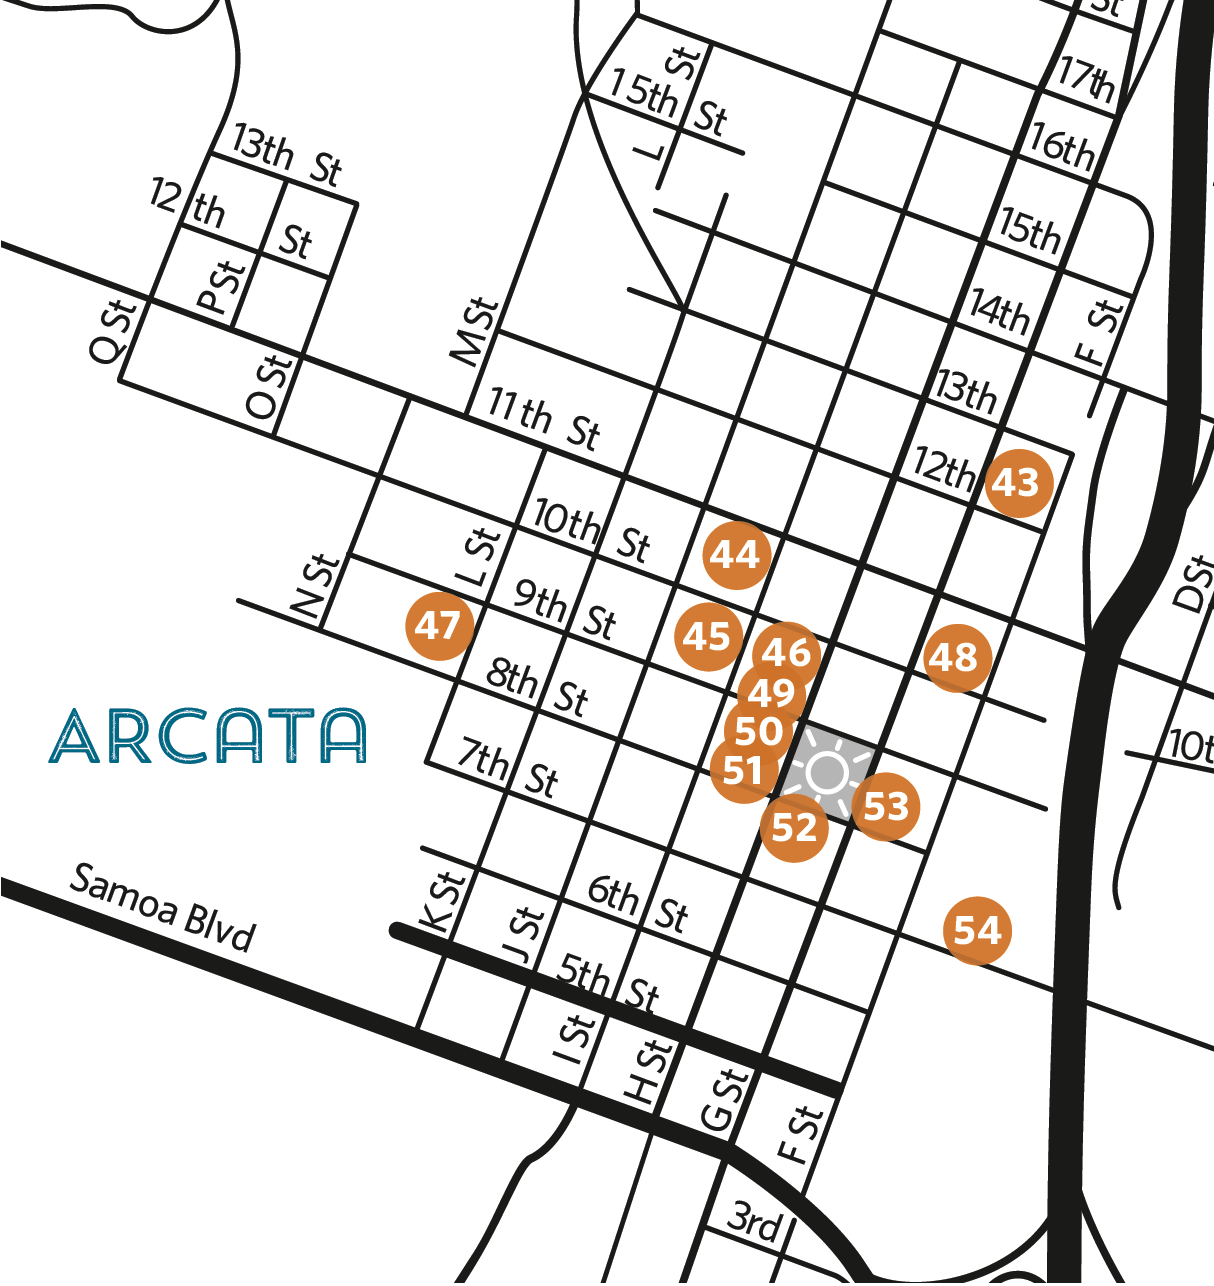 Overview map of locations - Arcata Closeup